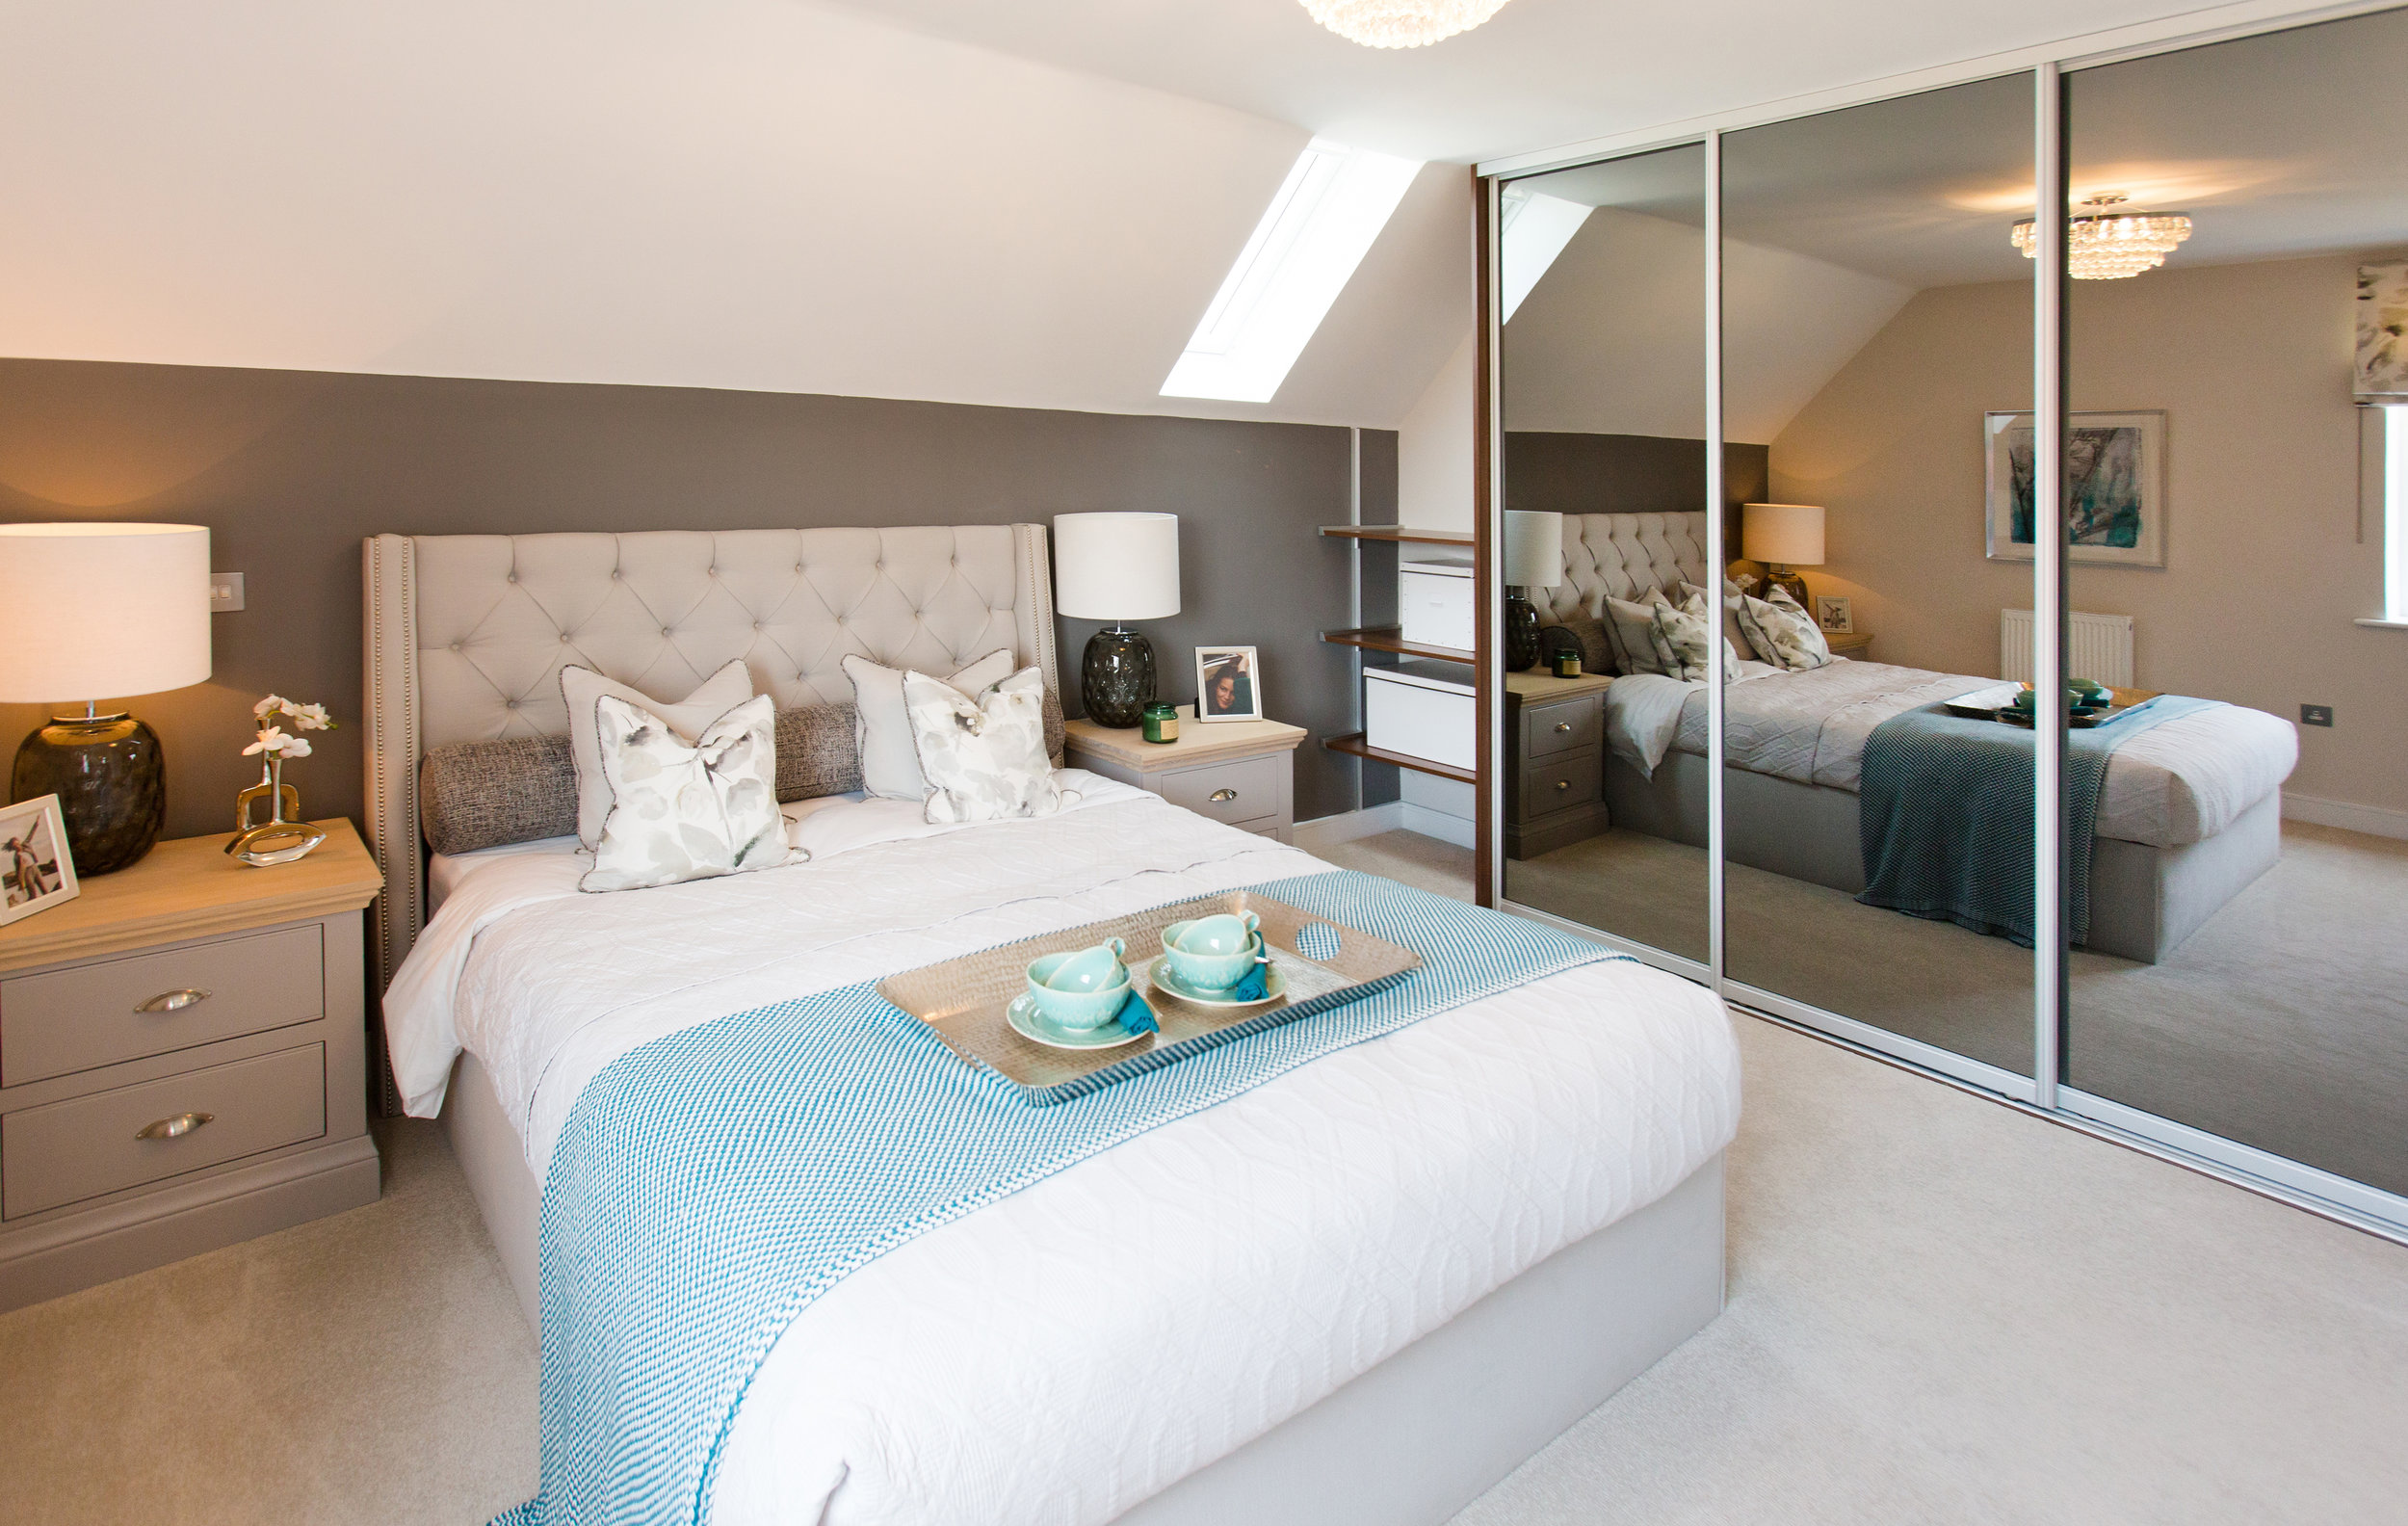 After the kitchen and bathroom fittings, potential buyers look to the bedroom storage offered.